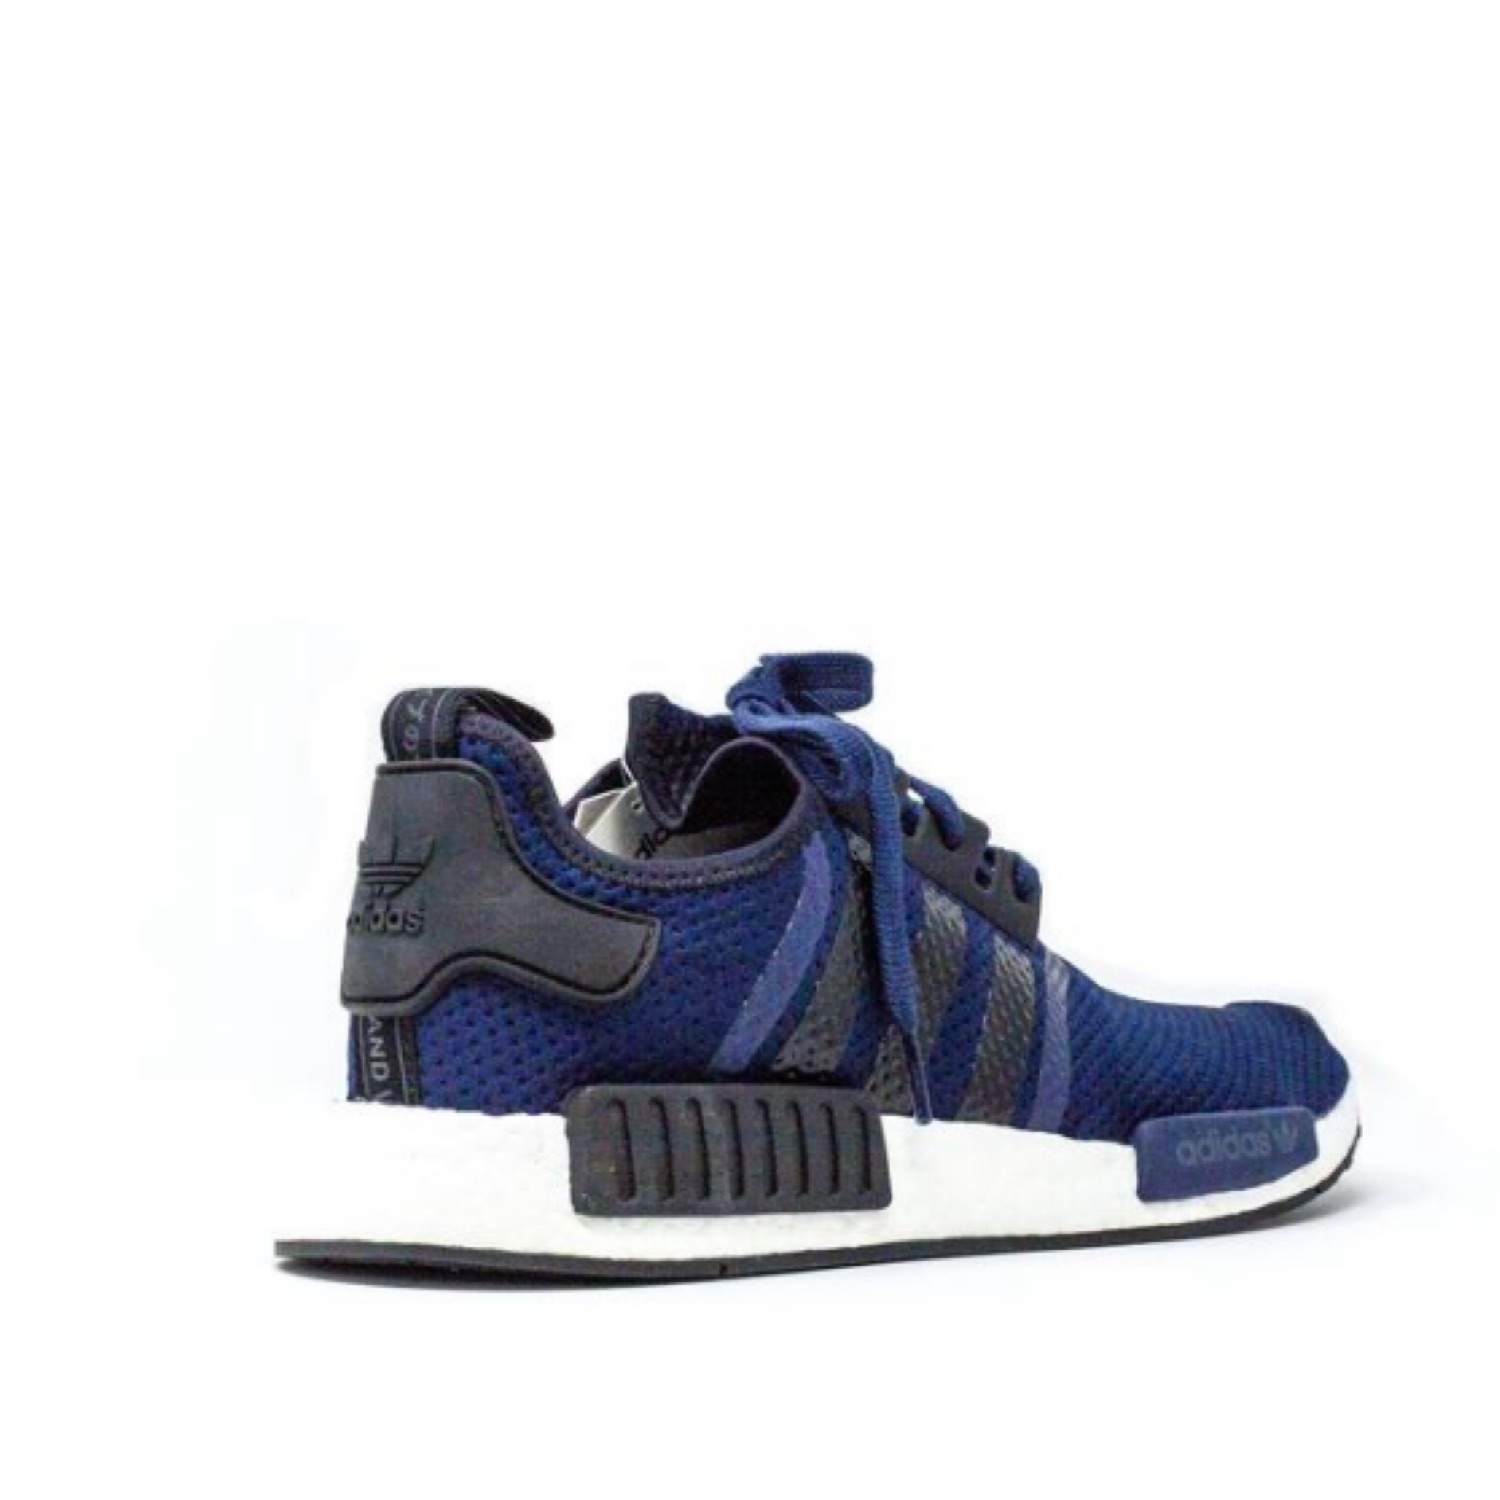 best sneakers dbe21 c84a0 Adidas Nmd R1 Jd Sports Black/Blue